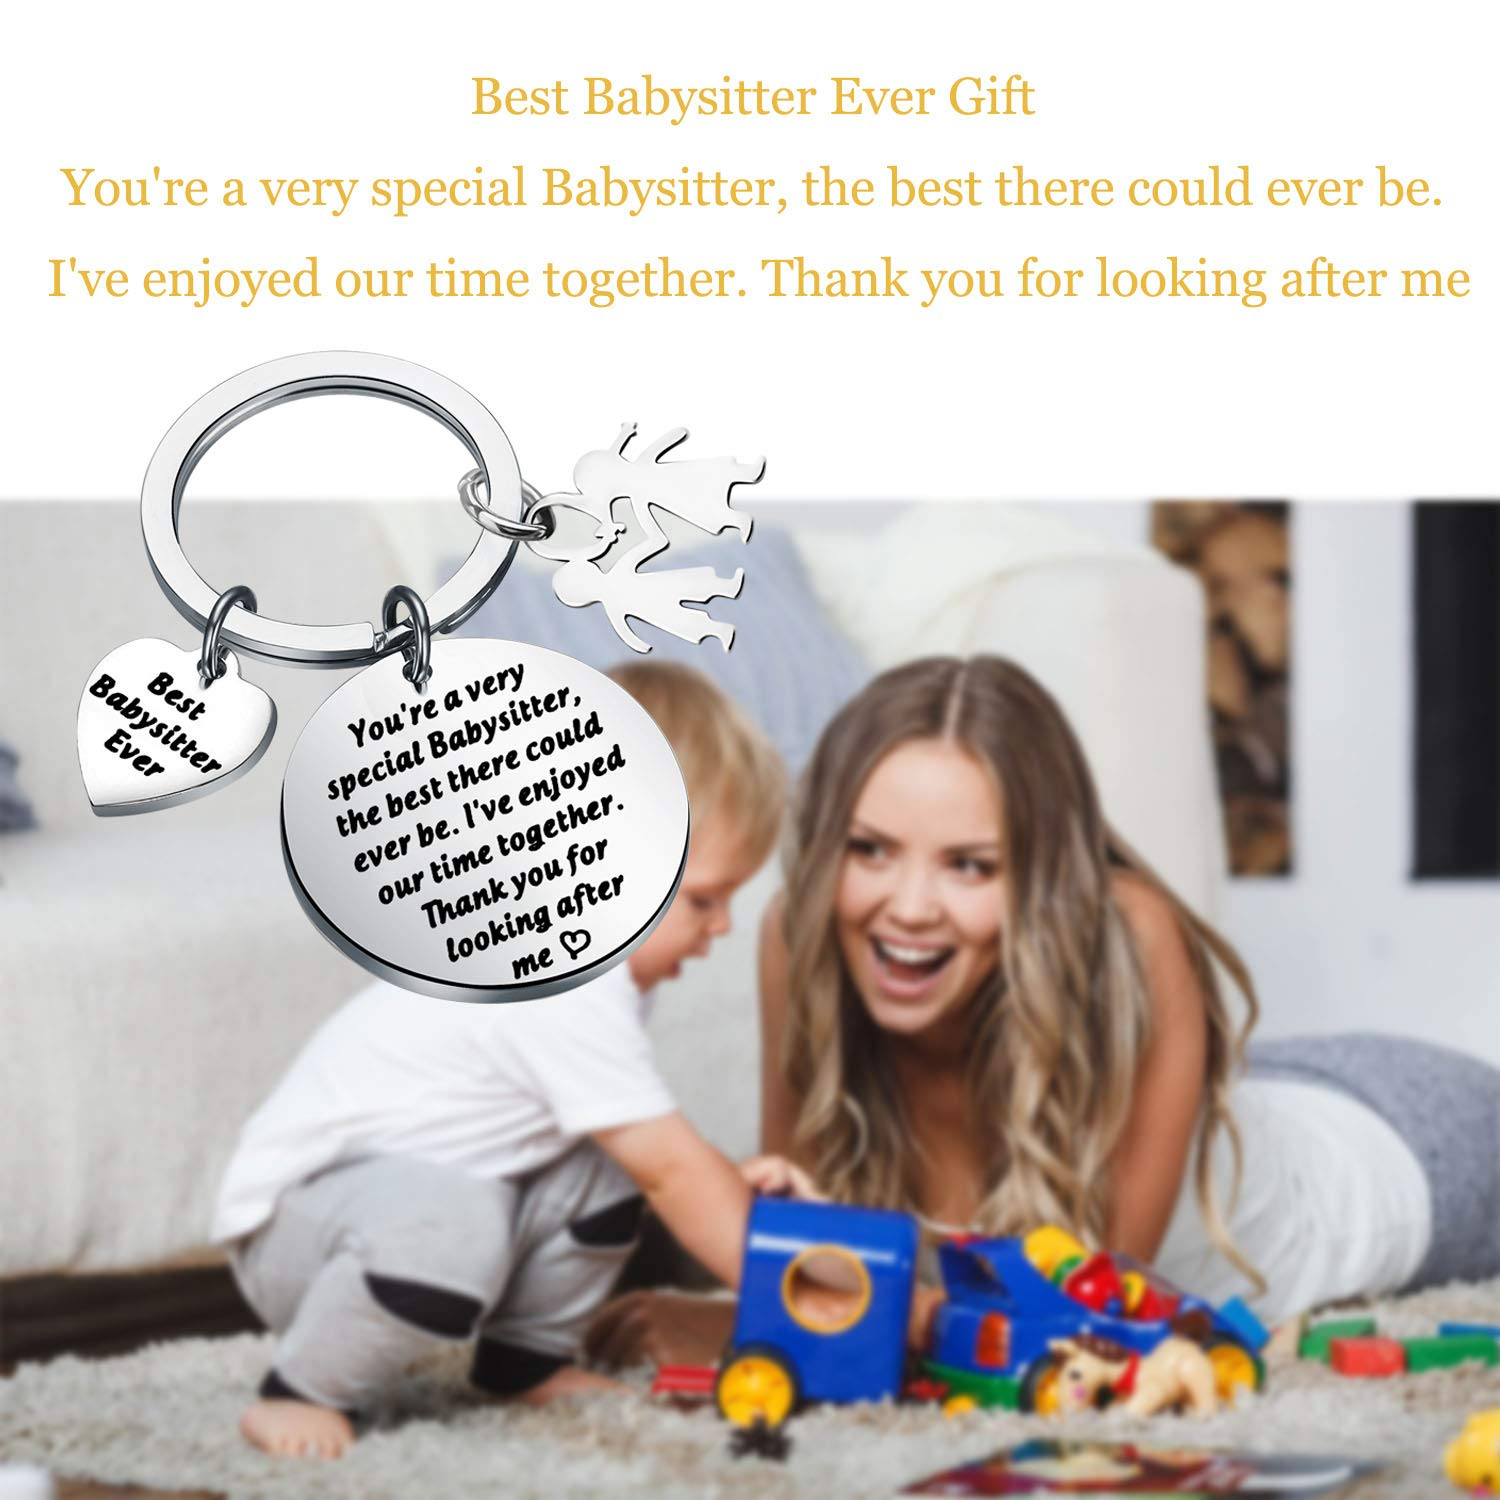 Lywjyb Birdgot Babysitter Gift Nanny Gift Babysitter Appreciation Gift Babysitter Gift Best Babysitter Ever Gift Thank You for Looking After Me Keychain Thank You Gift for Nanny